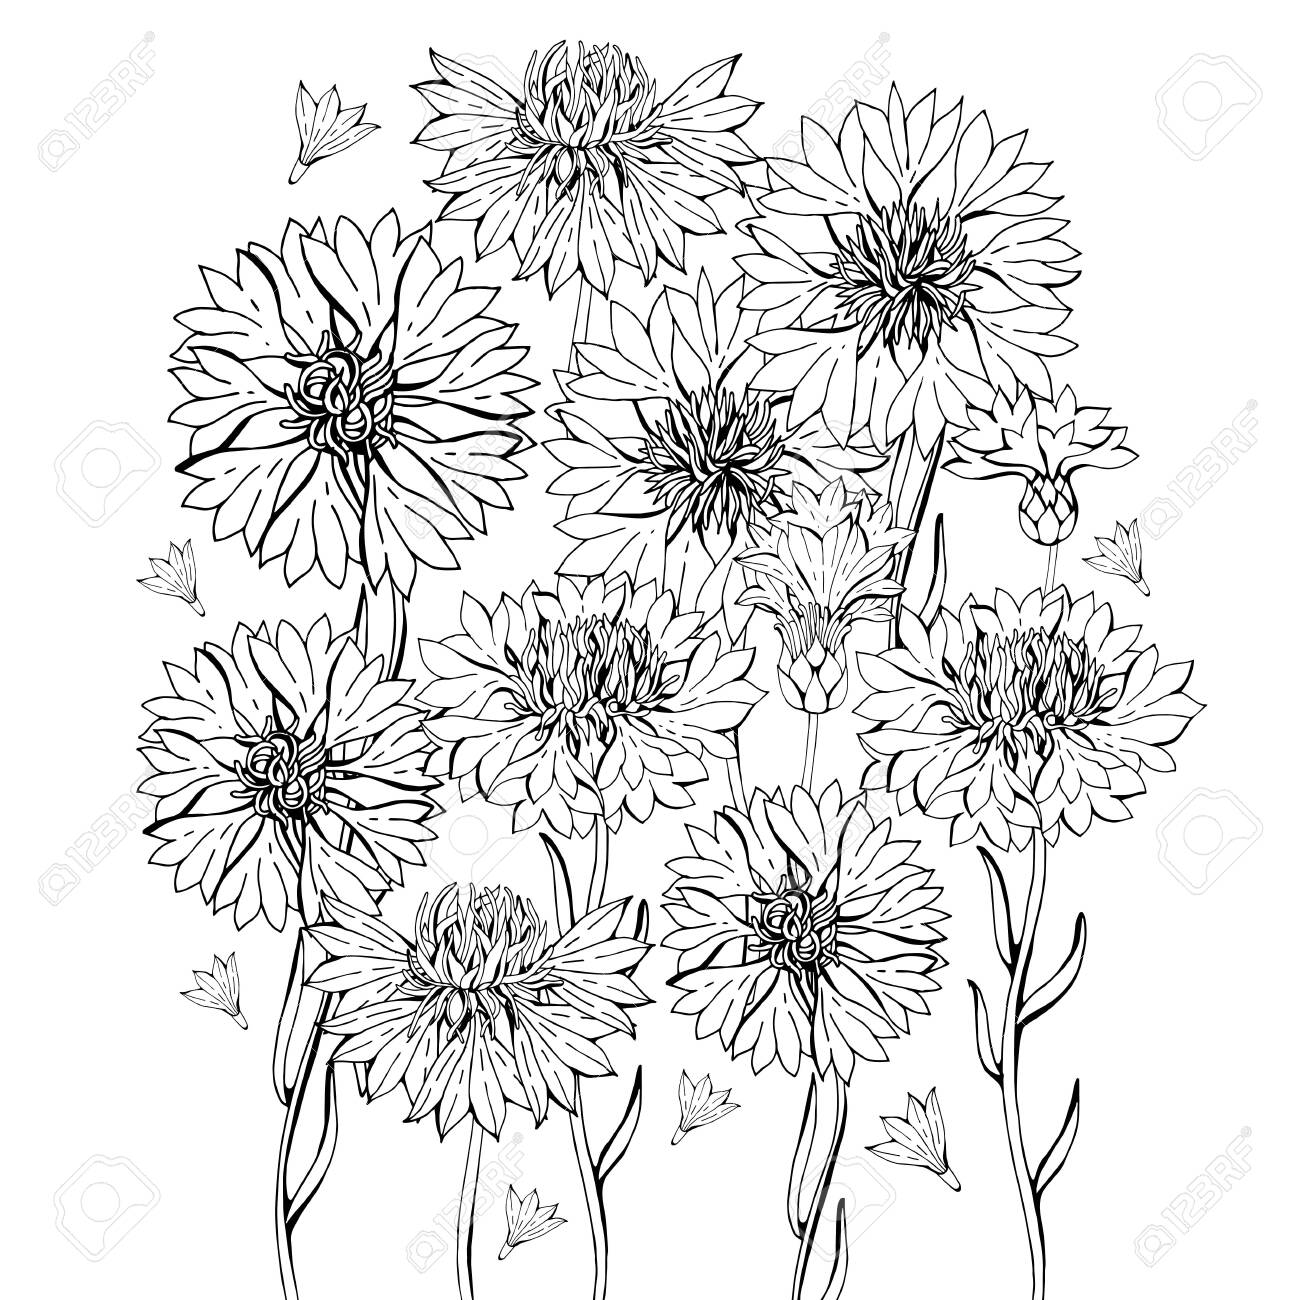 Coloring pages with cornflower flowers, zentangle illustrations..